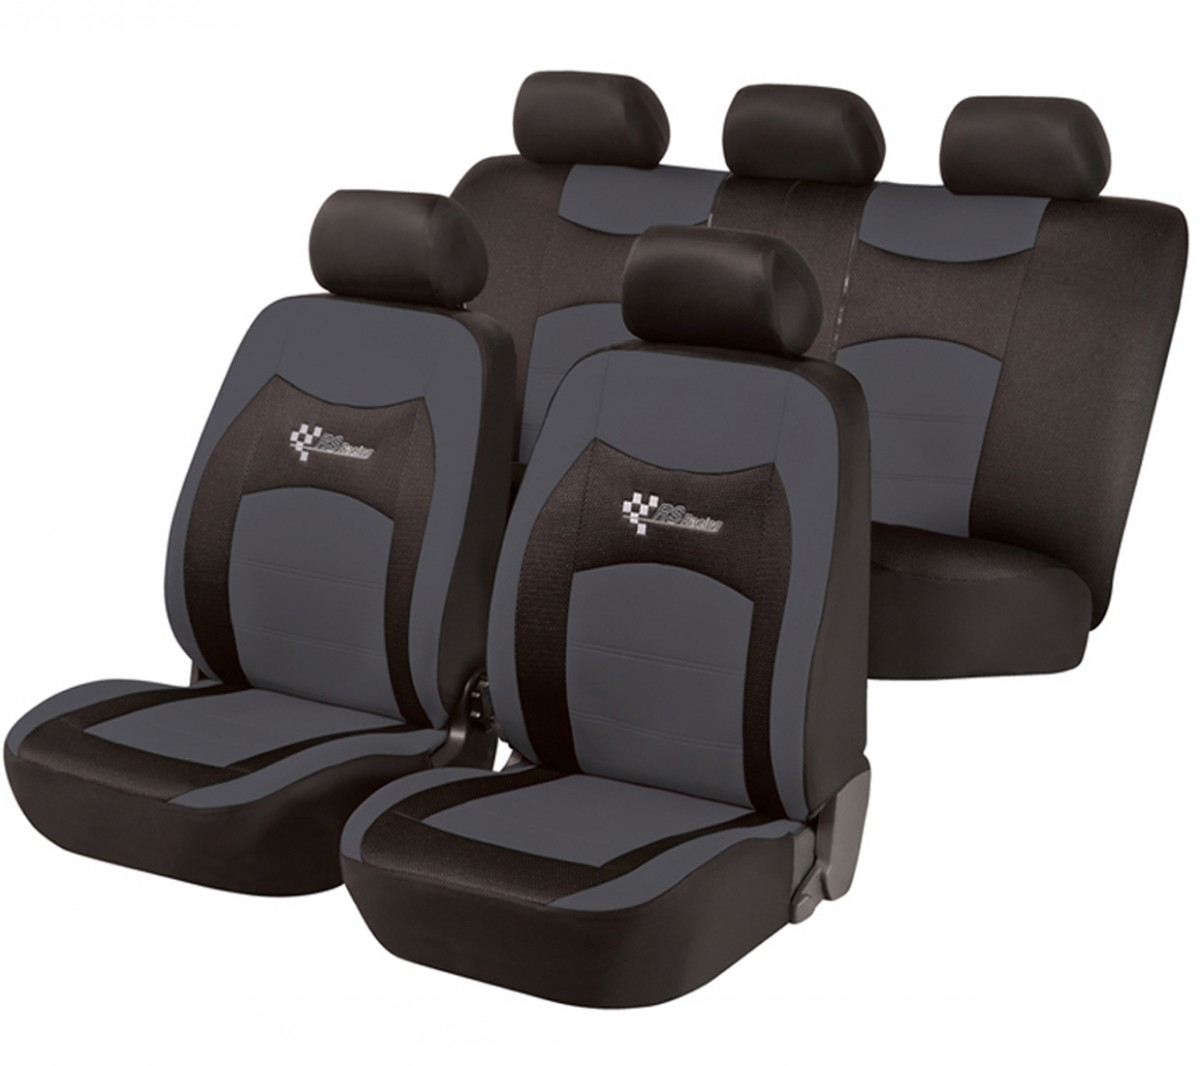 autositzbezug schonbezug komplett set vw golf vi. Black Bedroom Furniture Sets. Home Design Ideas